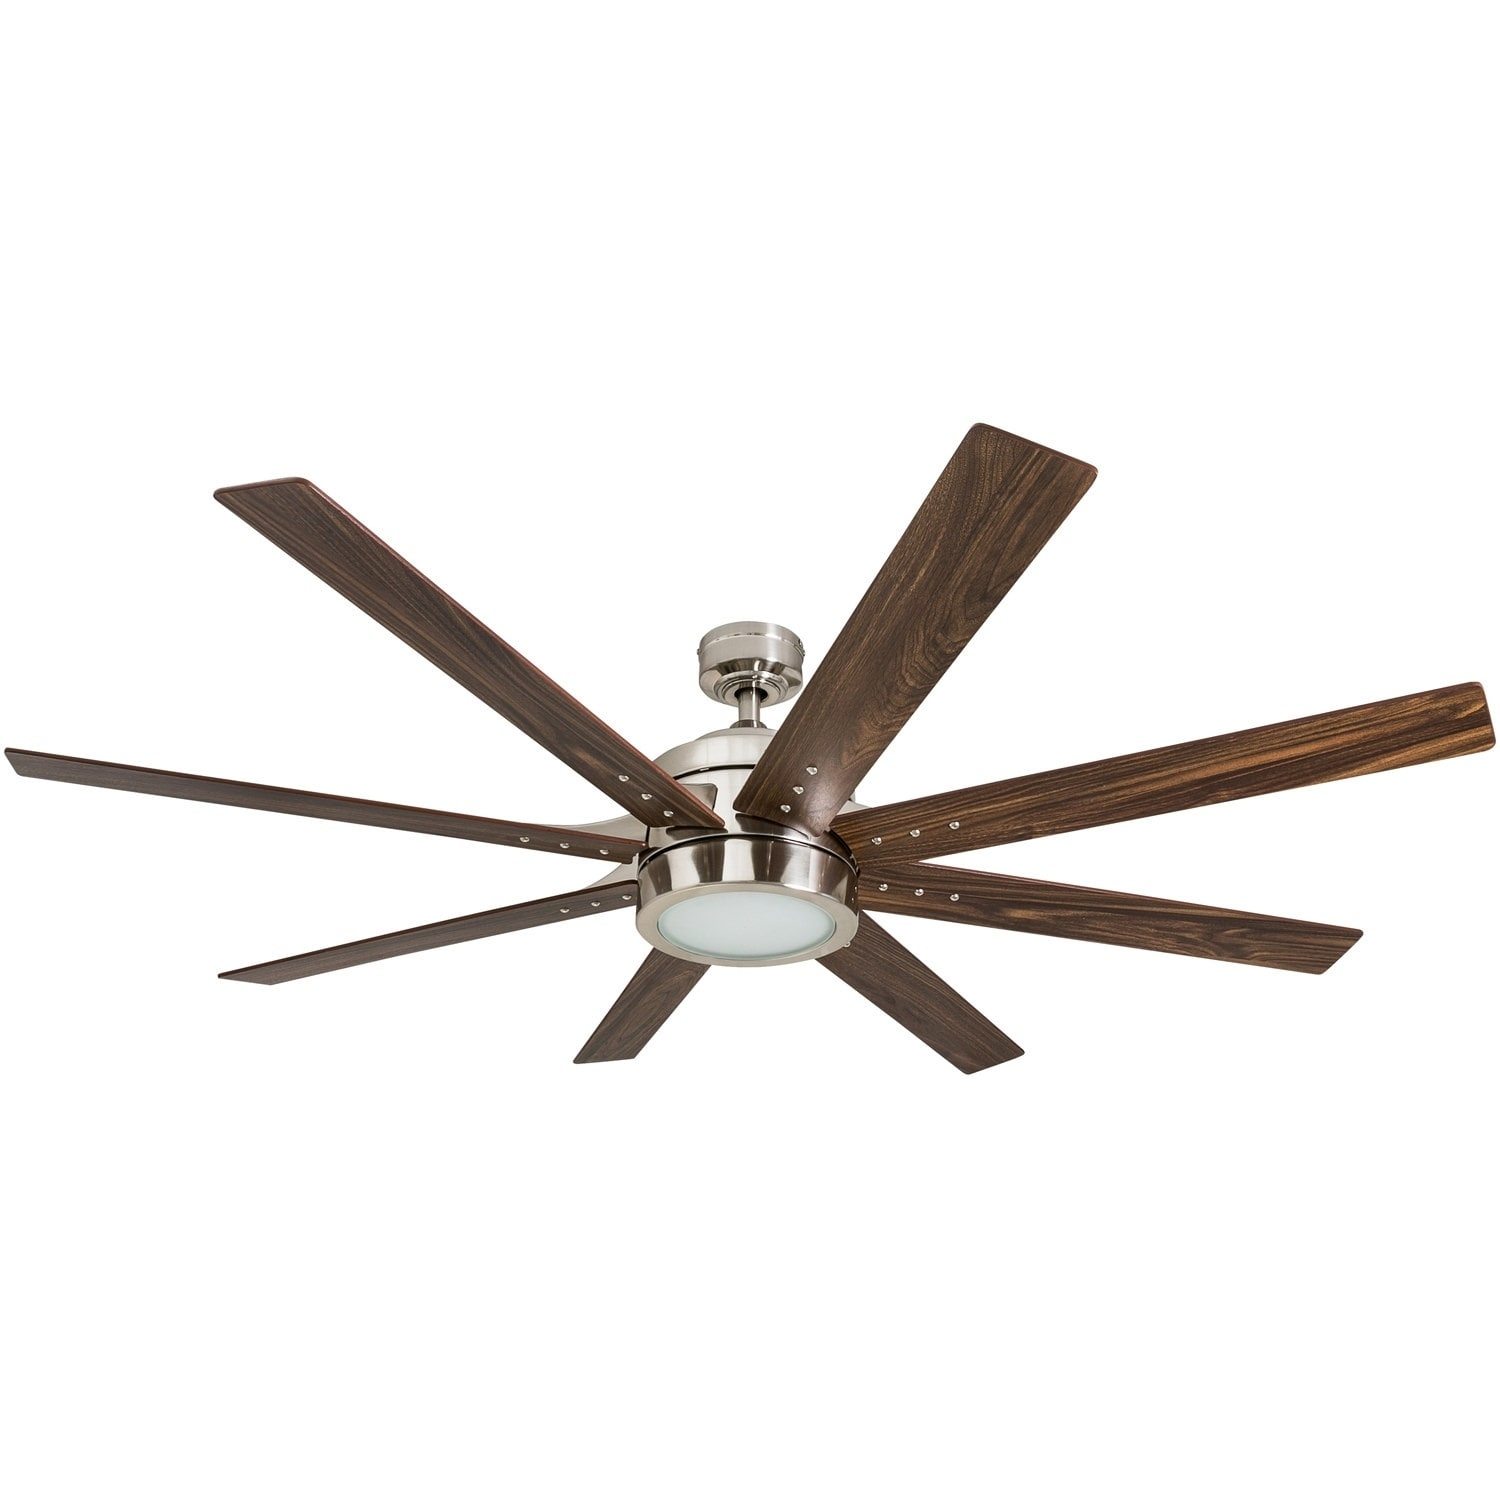 hight resolution of shop honeywell xerxes 62 brushed nickel led remote control ceiling fan 8 blade integrated light free shipping today overstock 25738545